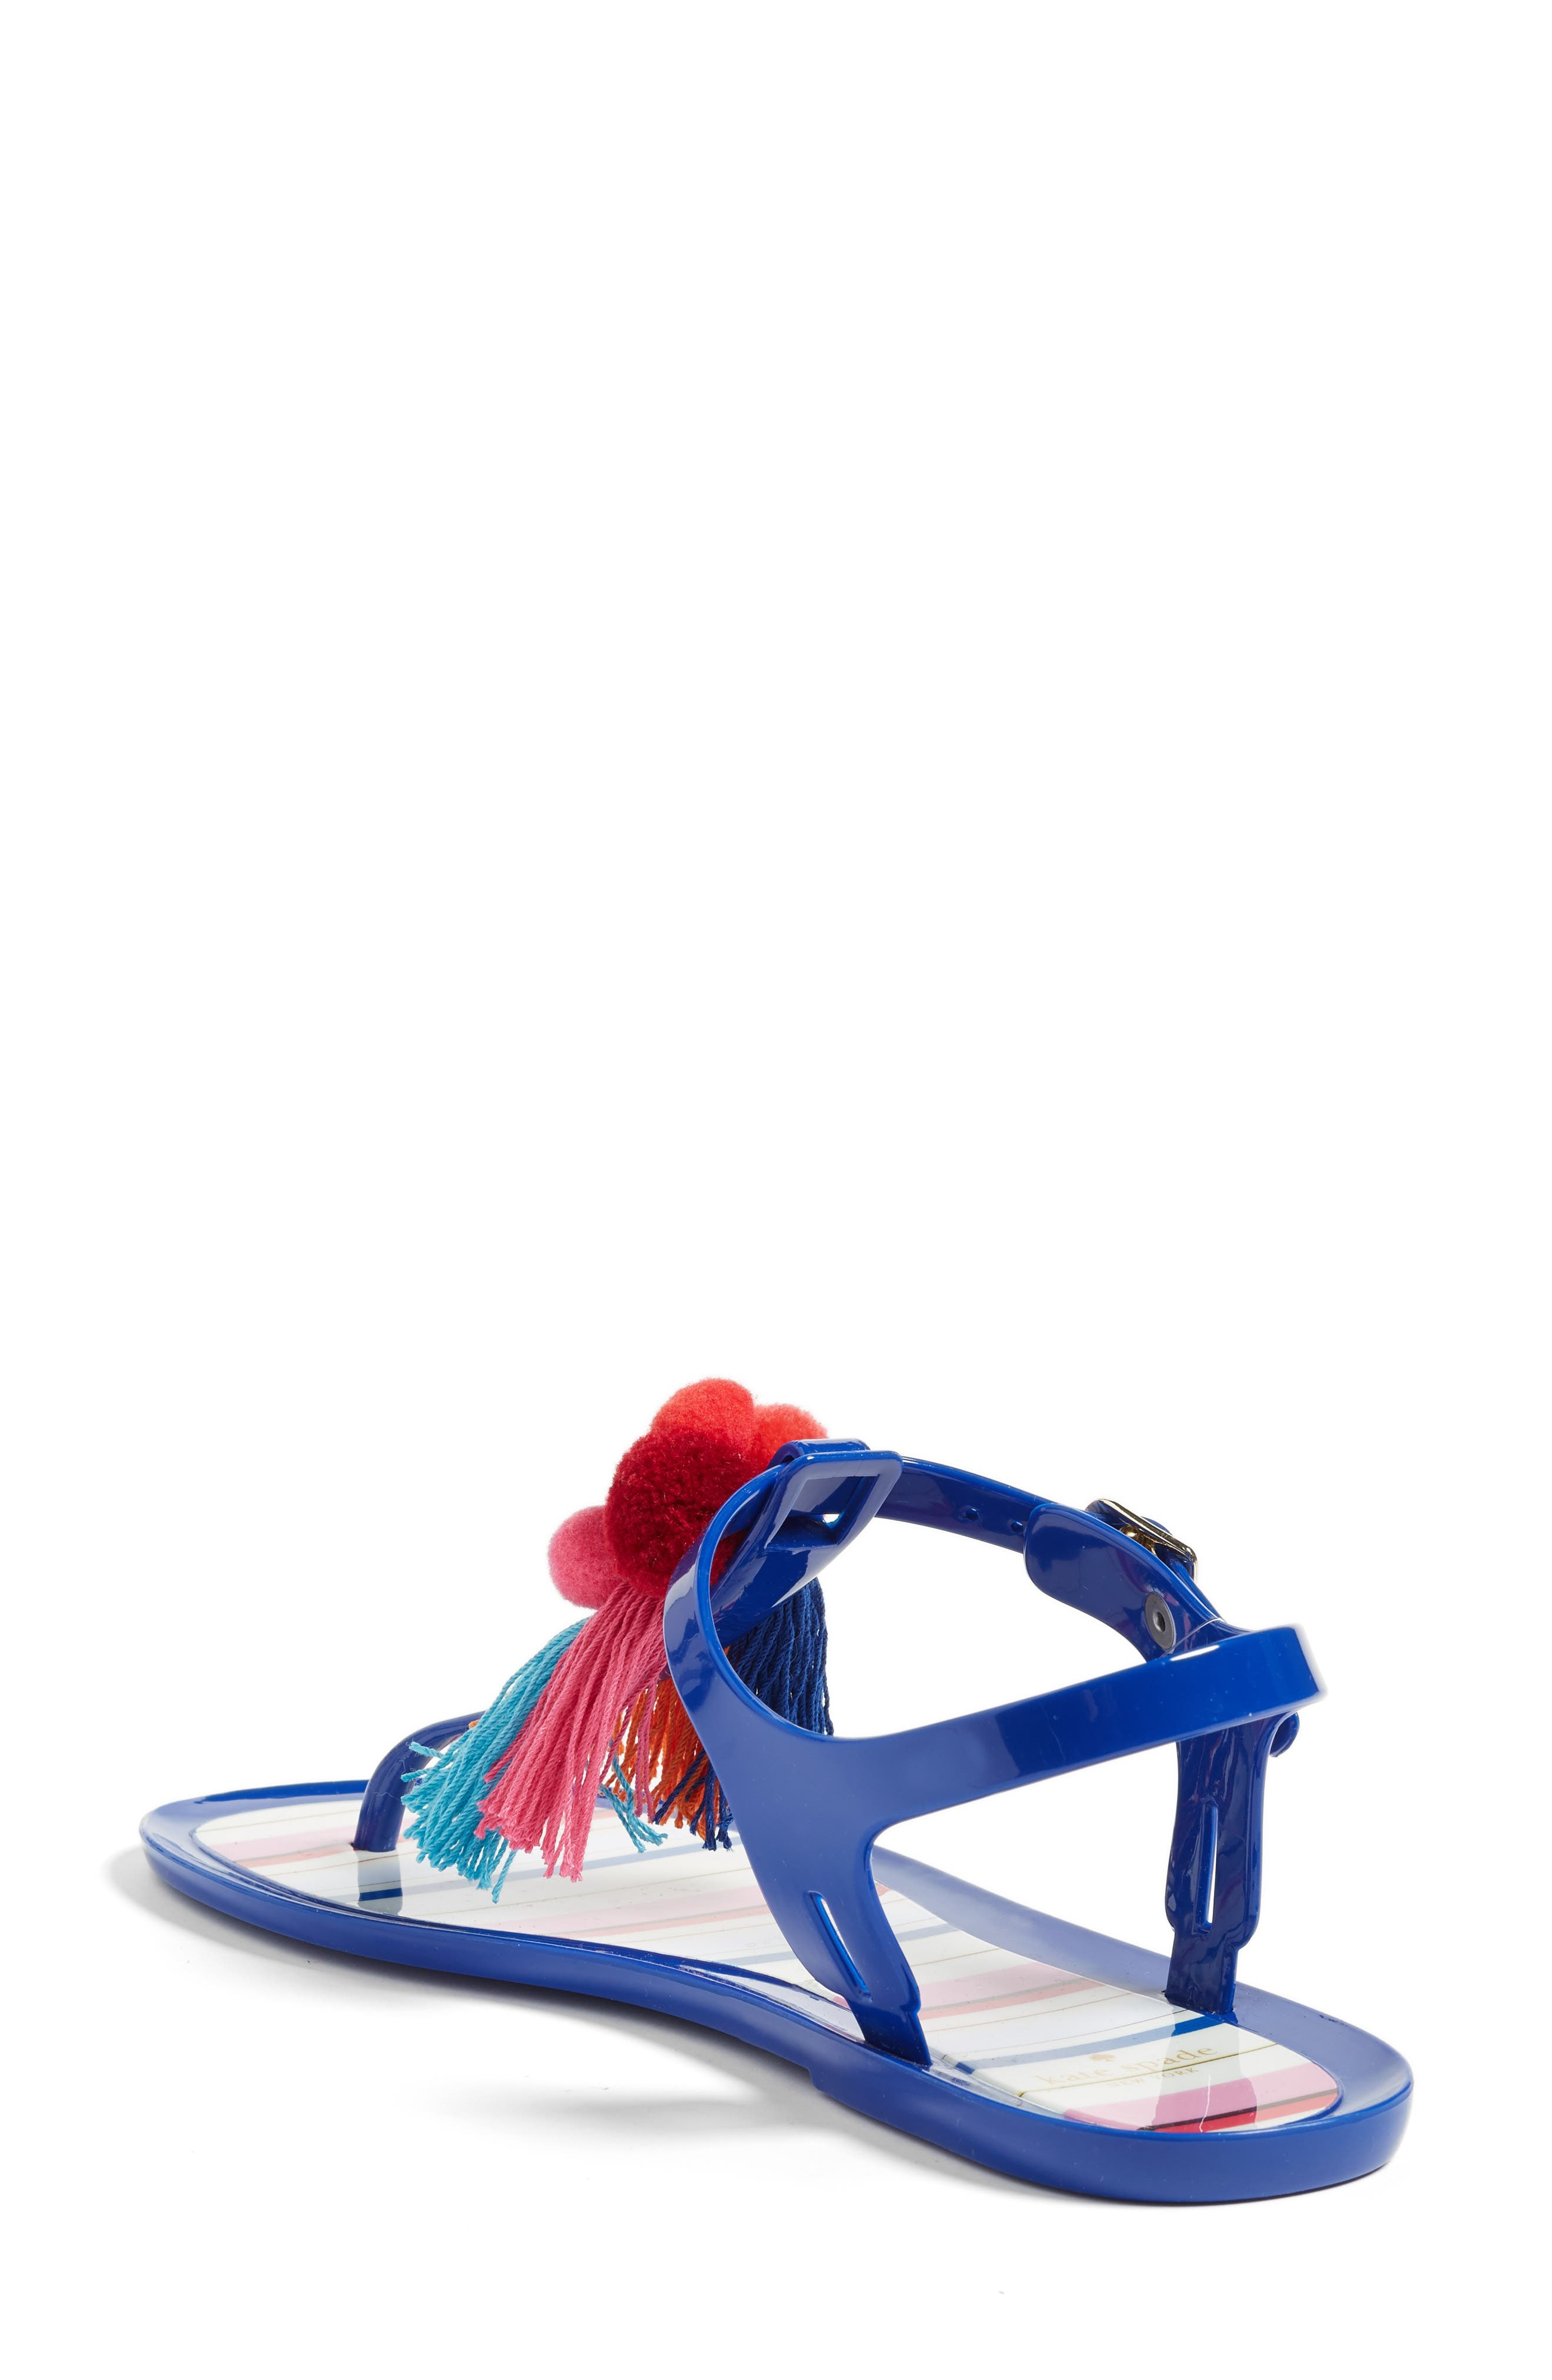 Alternate Image 2  - kate spade new york yellowstone t-strap jelly sandal (Women)